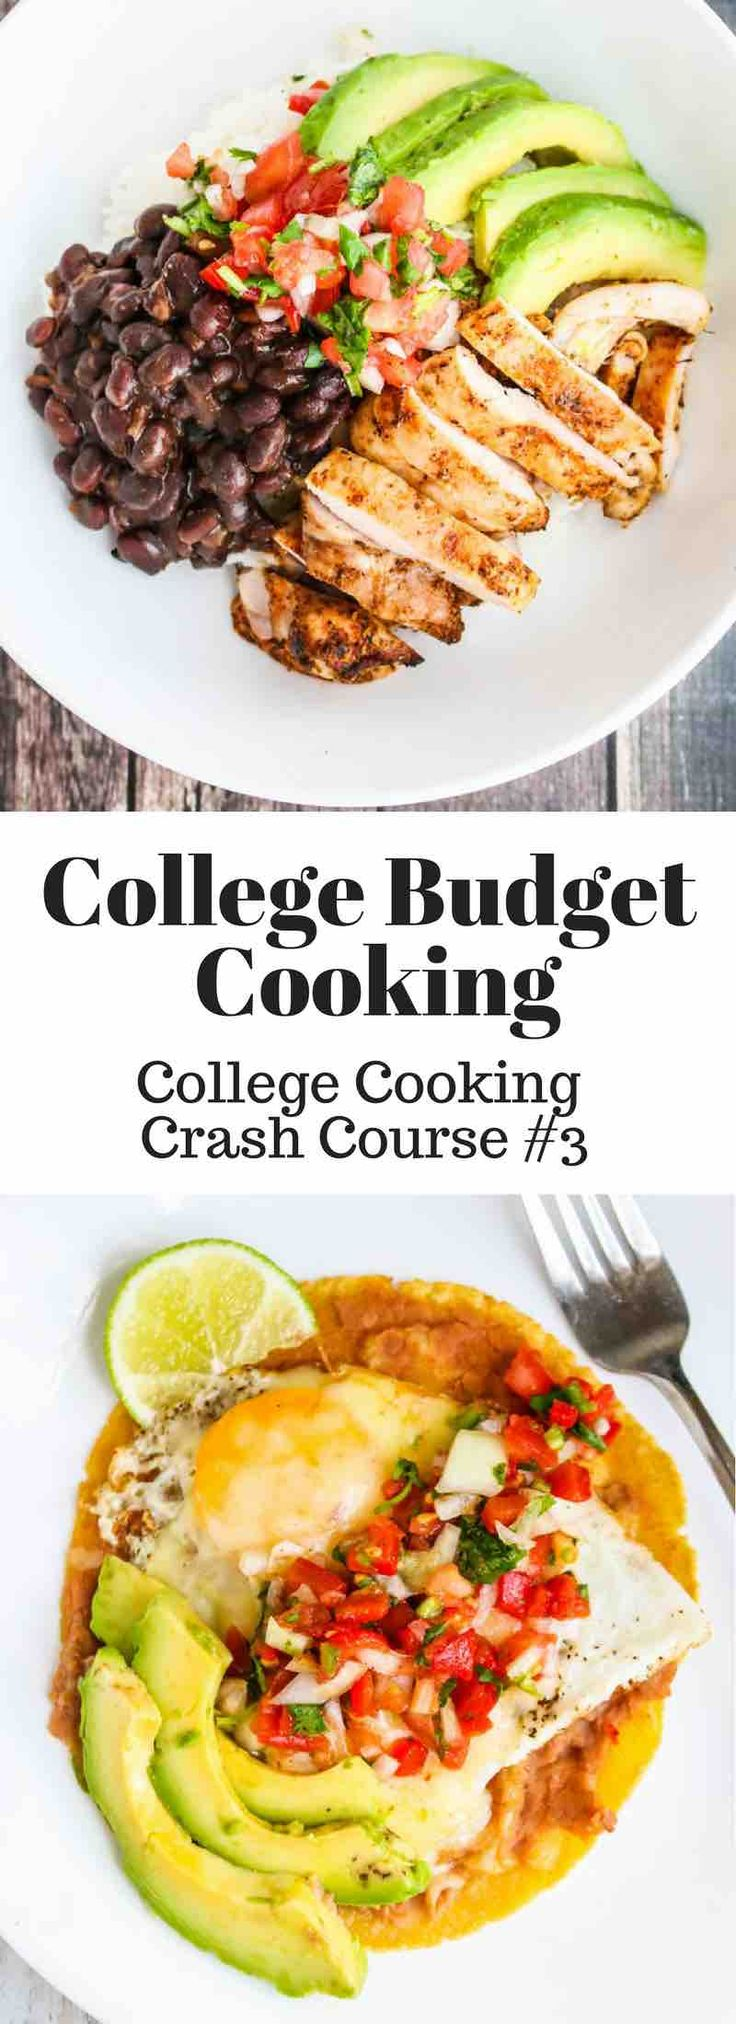 College Cooking Crash Course. Learn how to cook healthy on a low budget of $6/day, making huevos rancheros, quesadillas and burrito bowls repurposing ingredients. (easy healthy meals grocery)